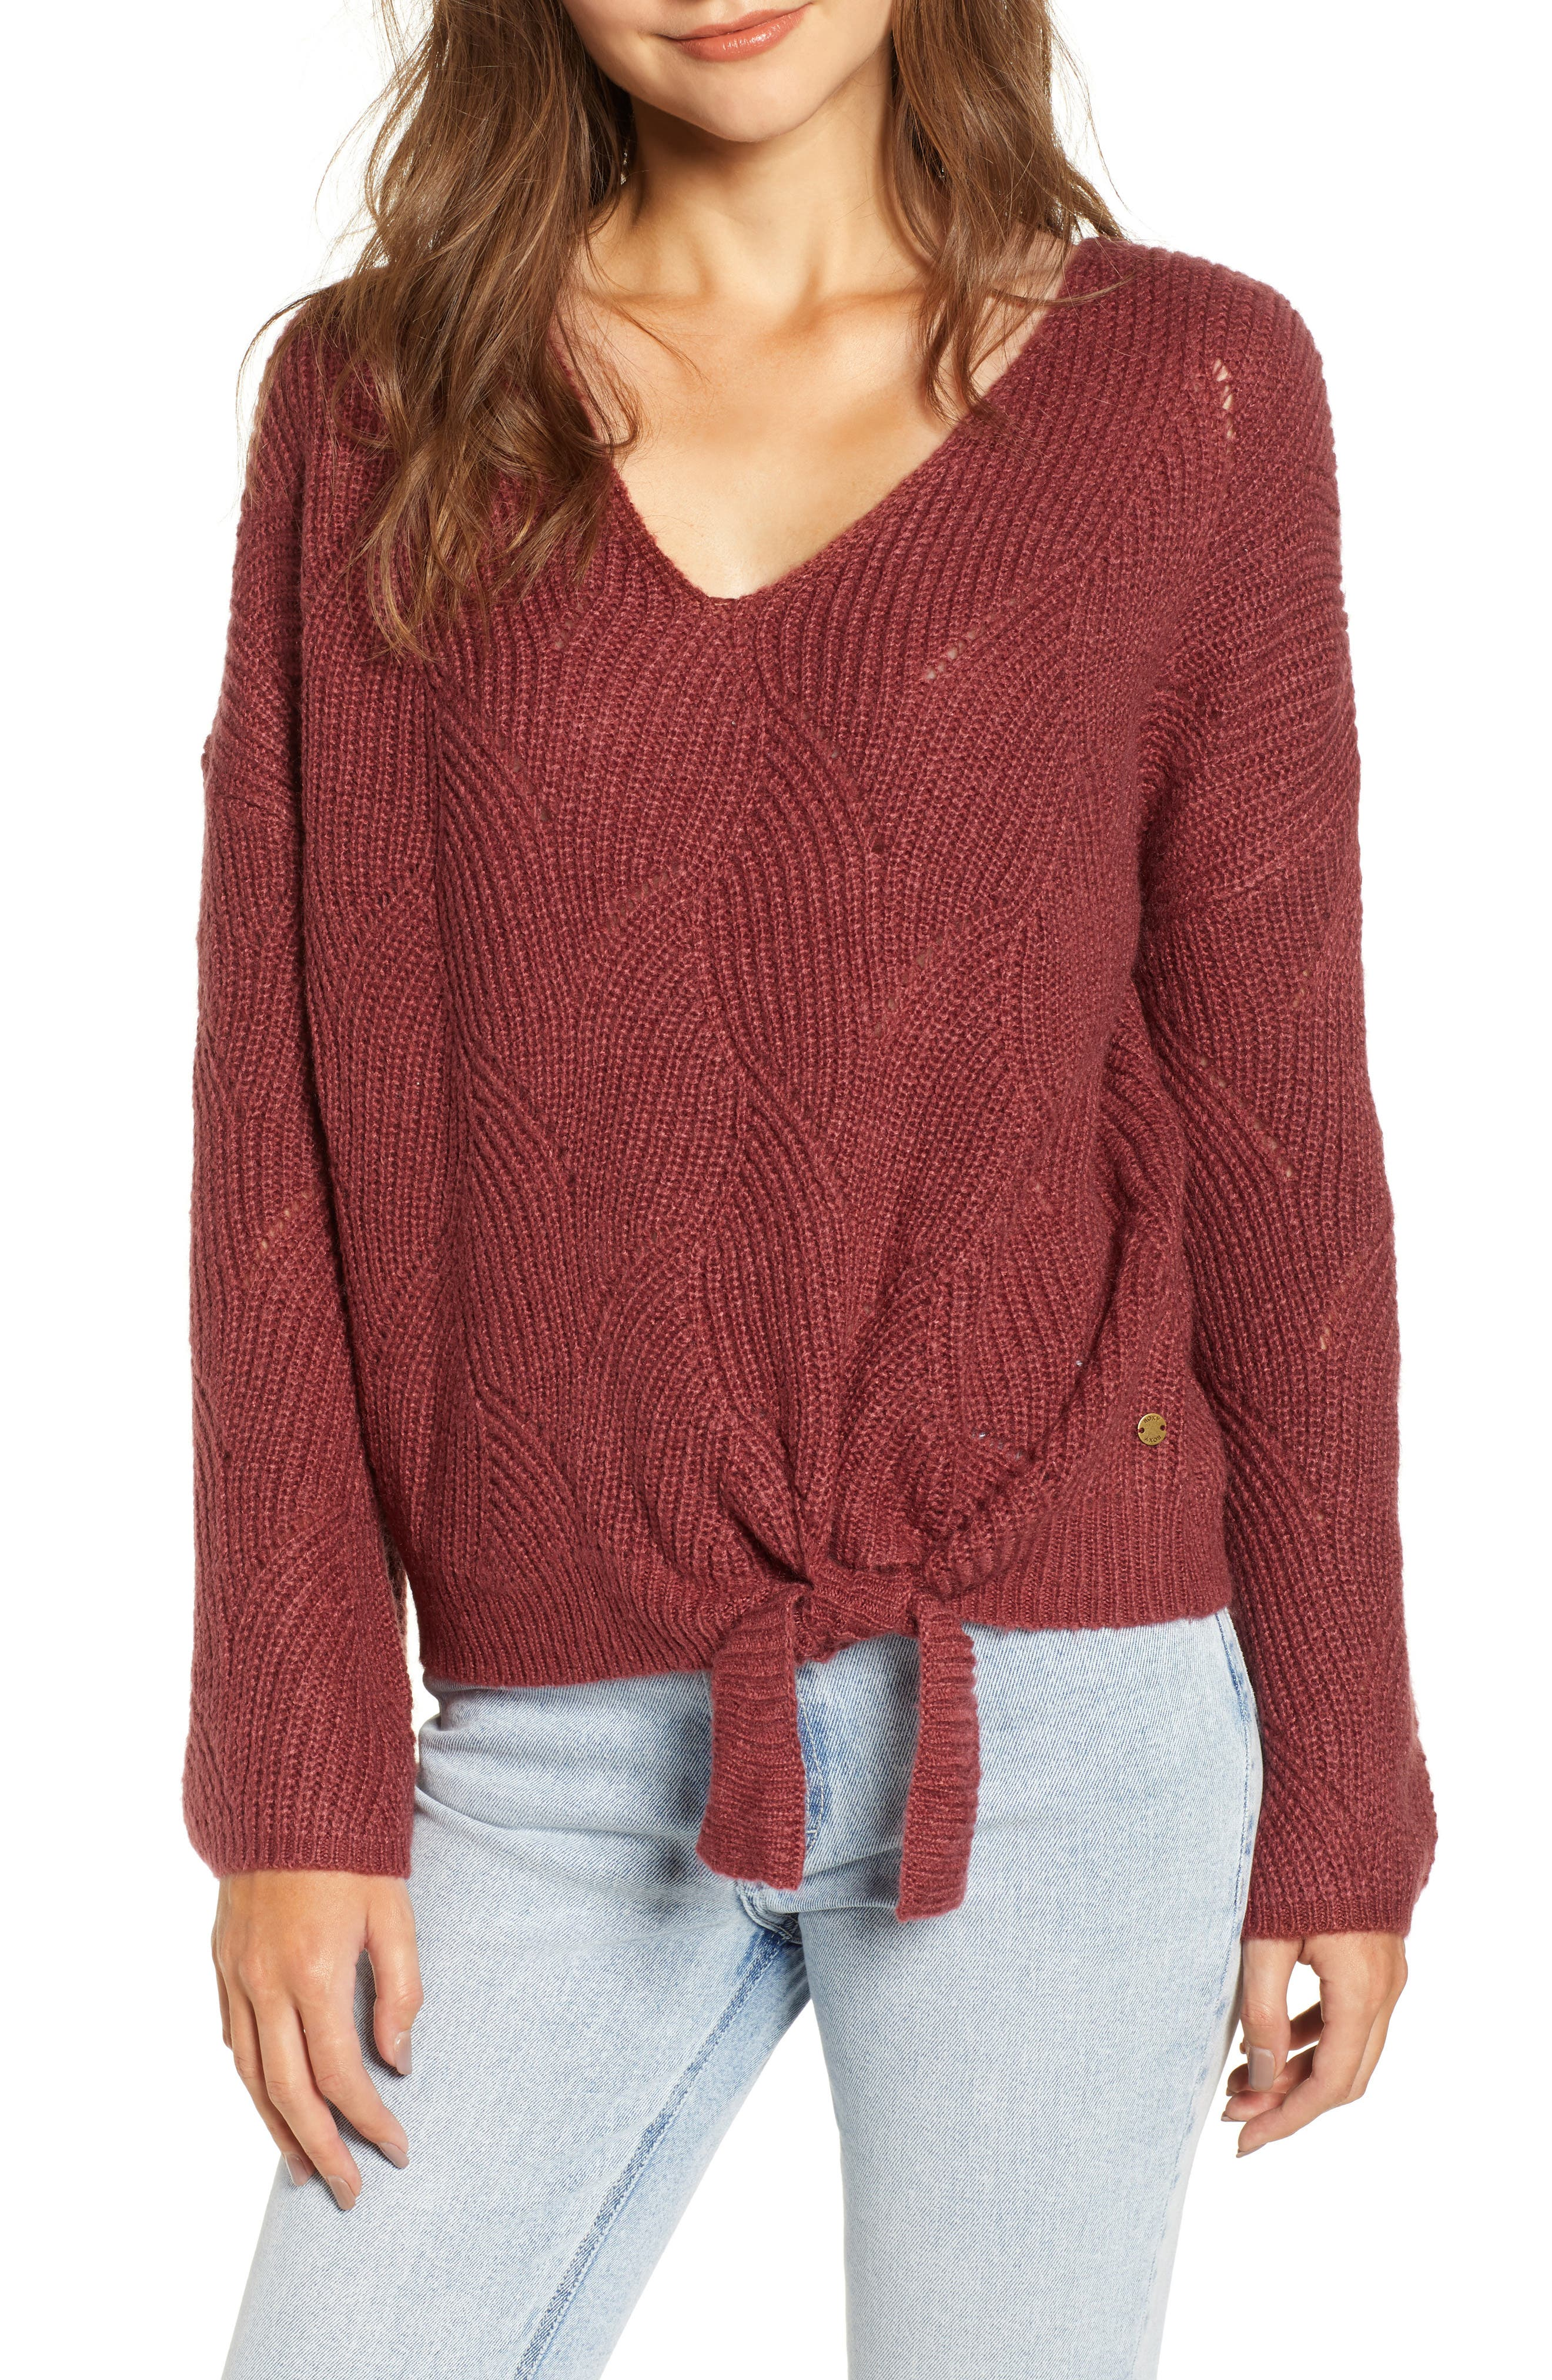 ROXY See You In Bali Sweater, Main, color, 600